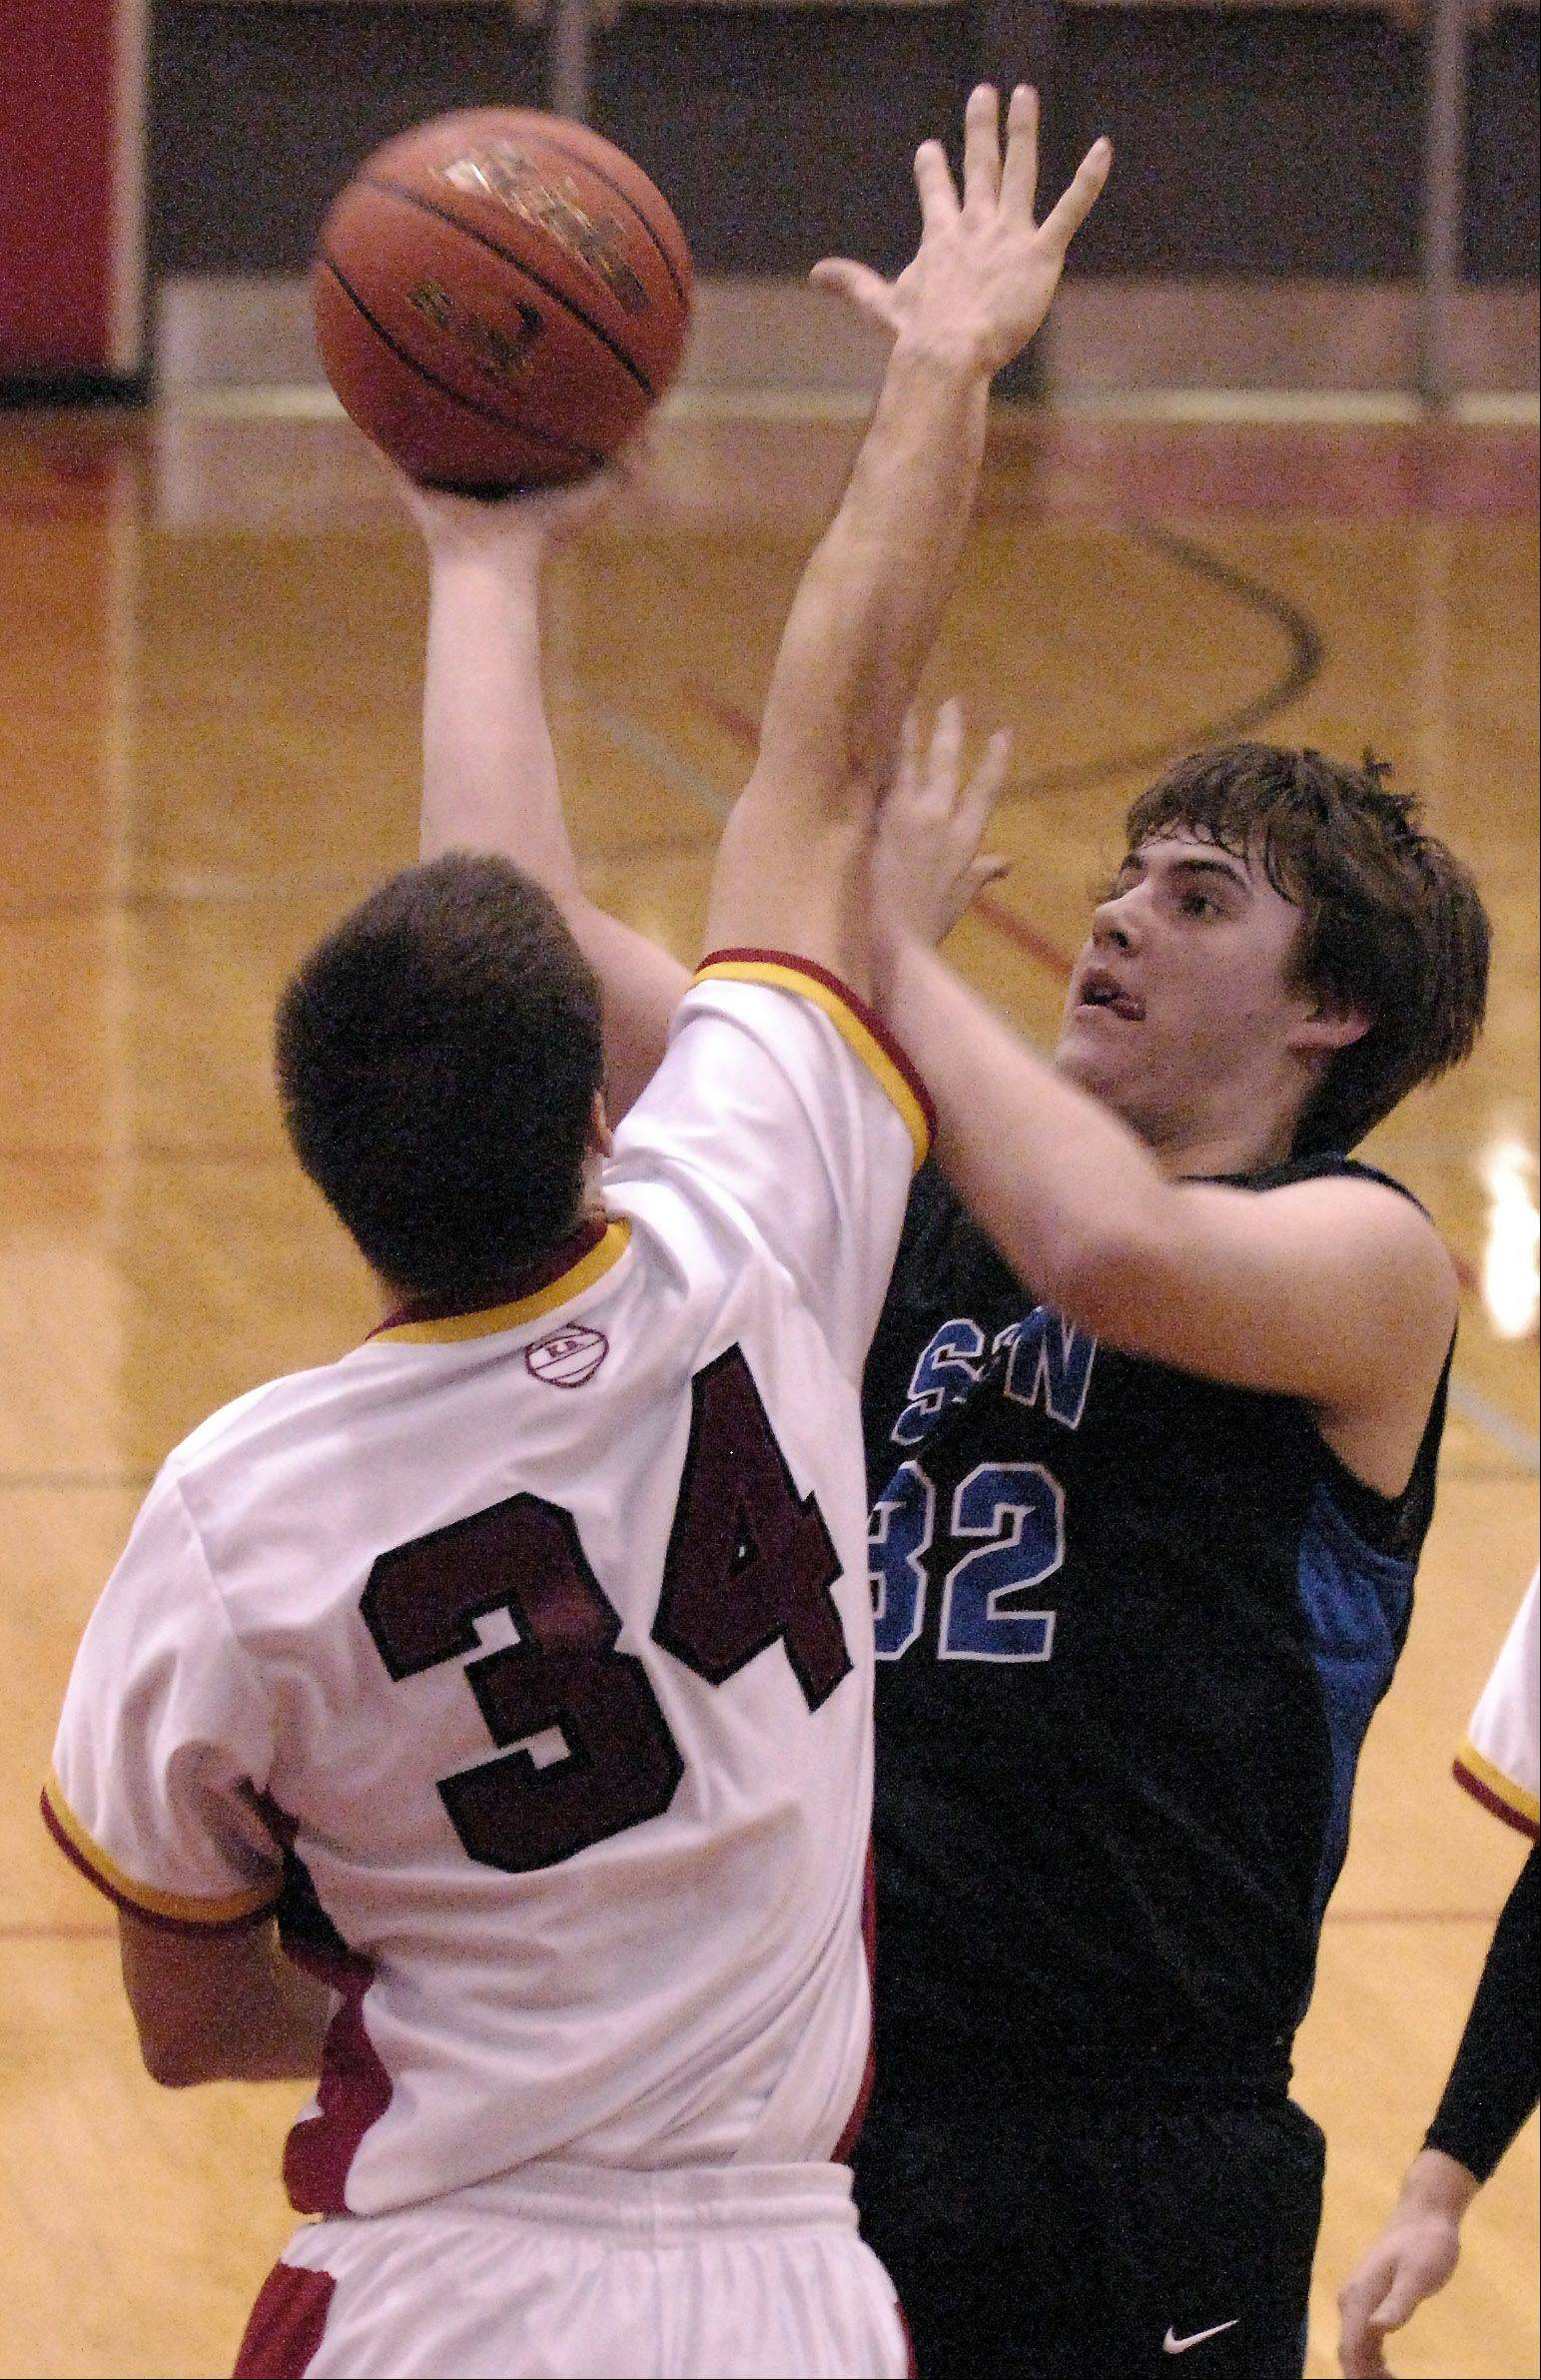 St. Charles North's Jack Callaghan puts up a shot against the defense of Batavia's Zach Strittmatter.